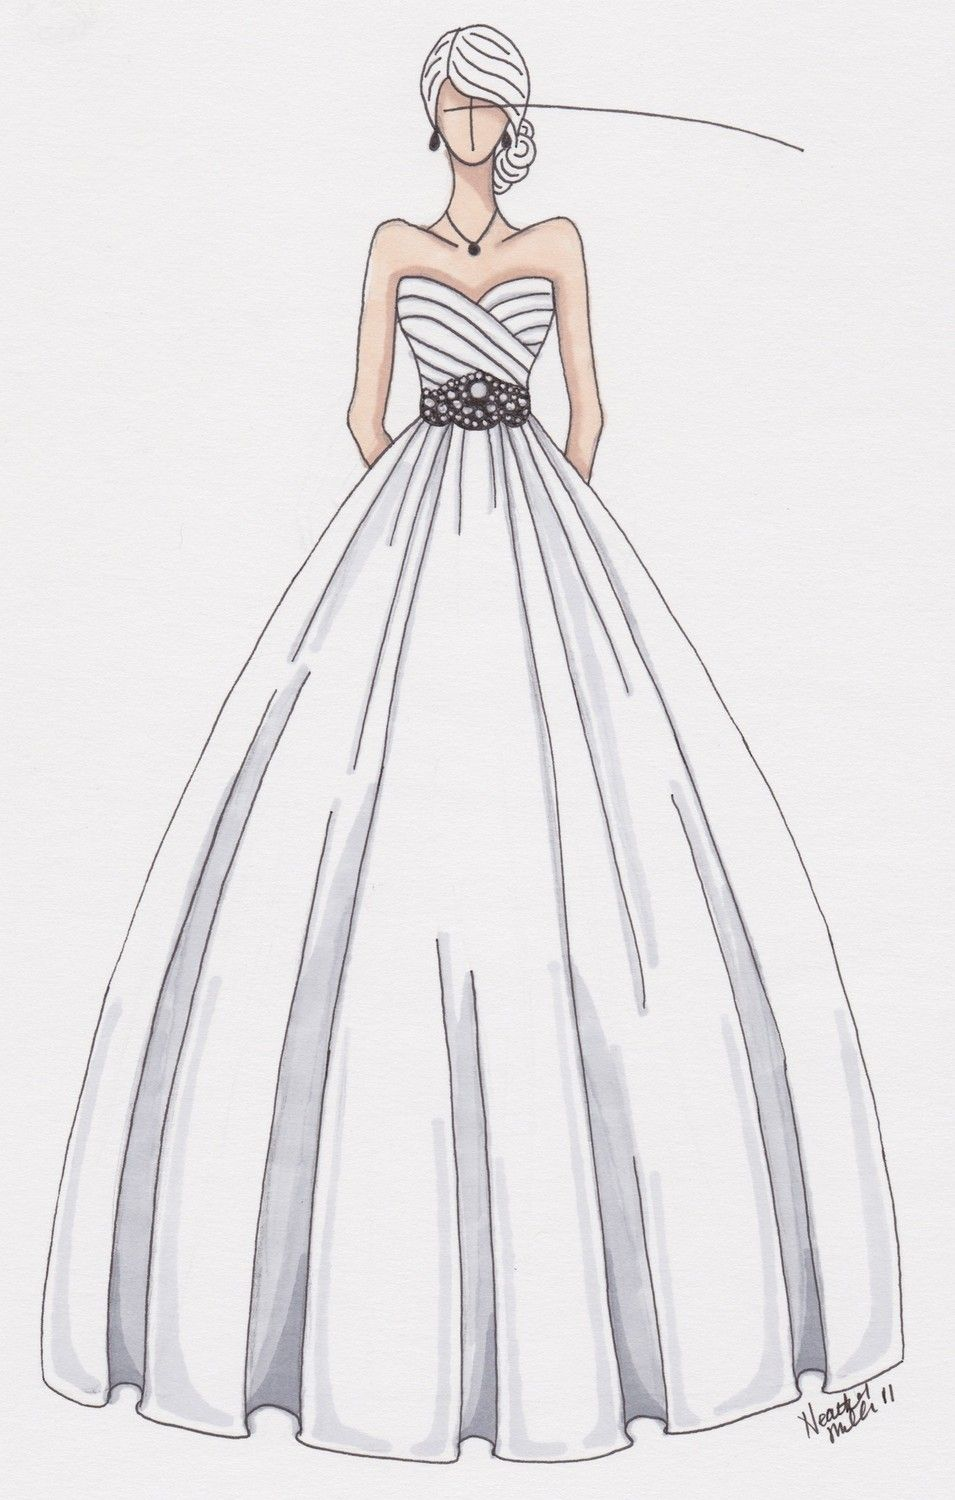 custom wedding gown sketch by gownsketch on Etsy | 有一首歌 There is ...